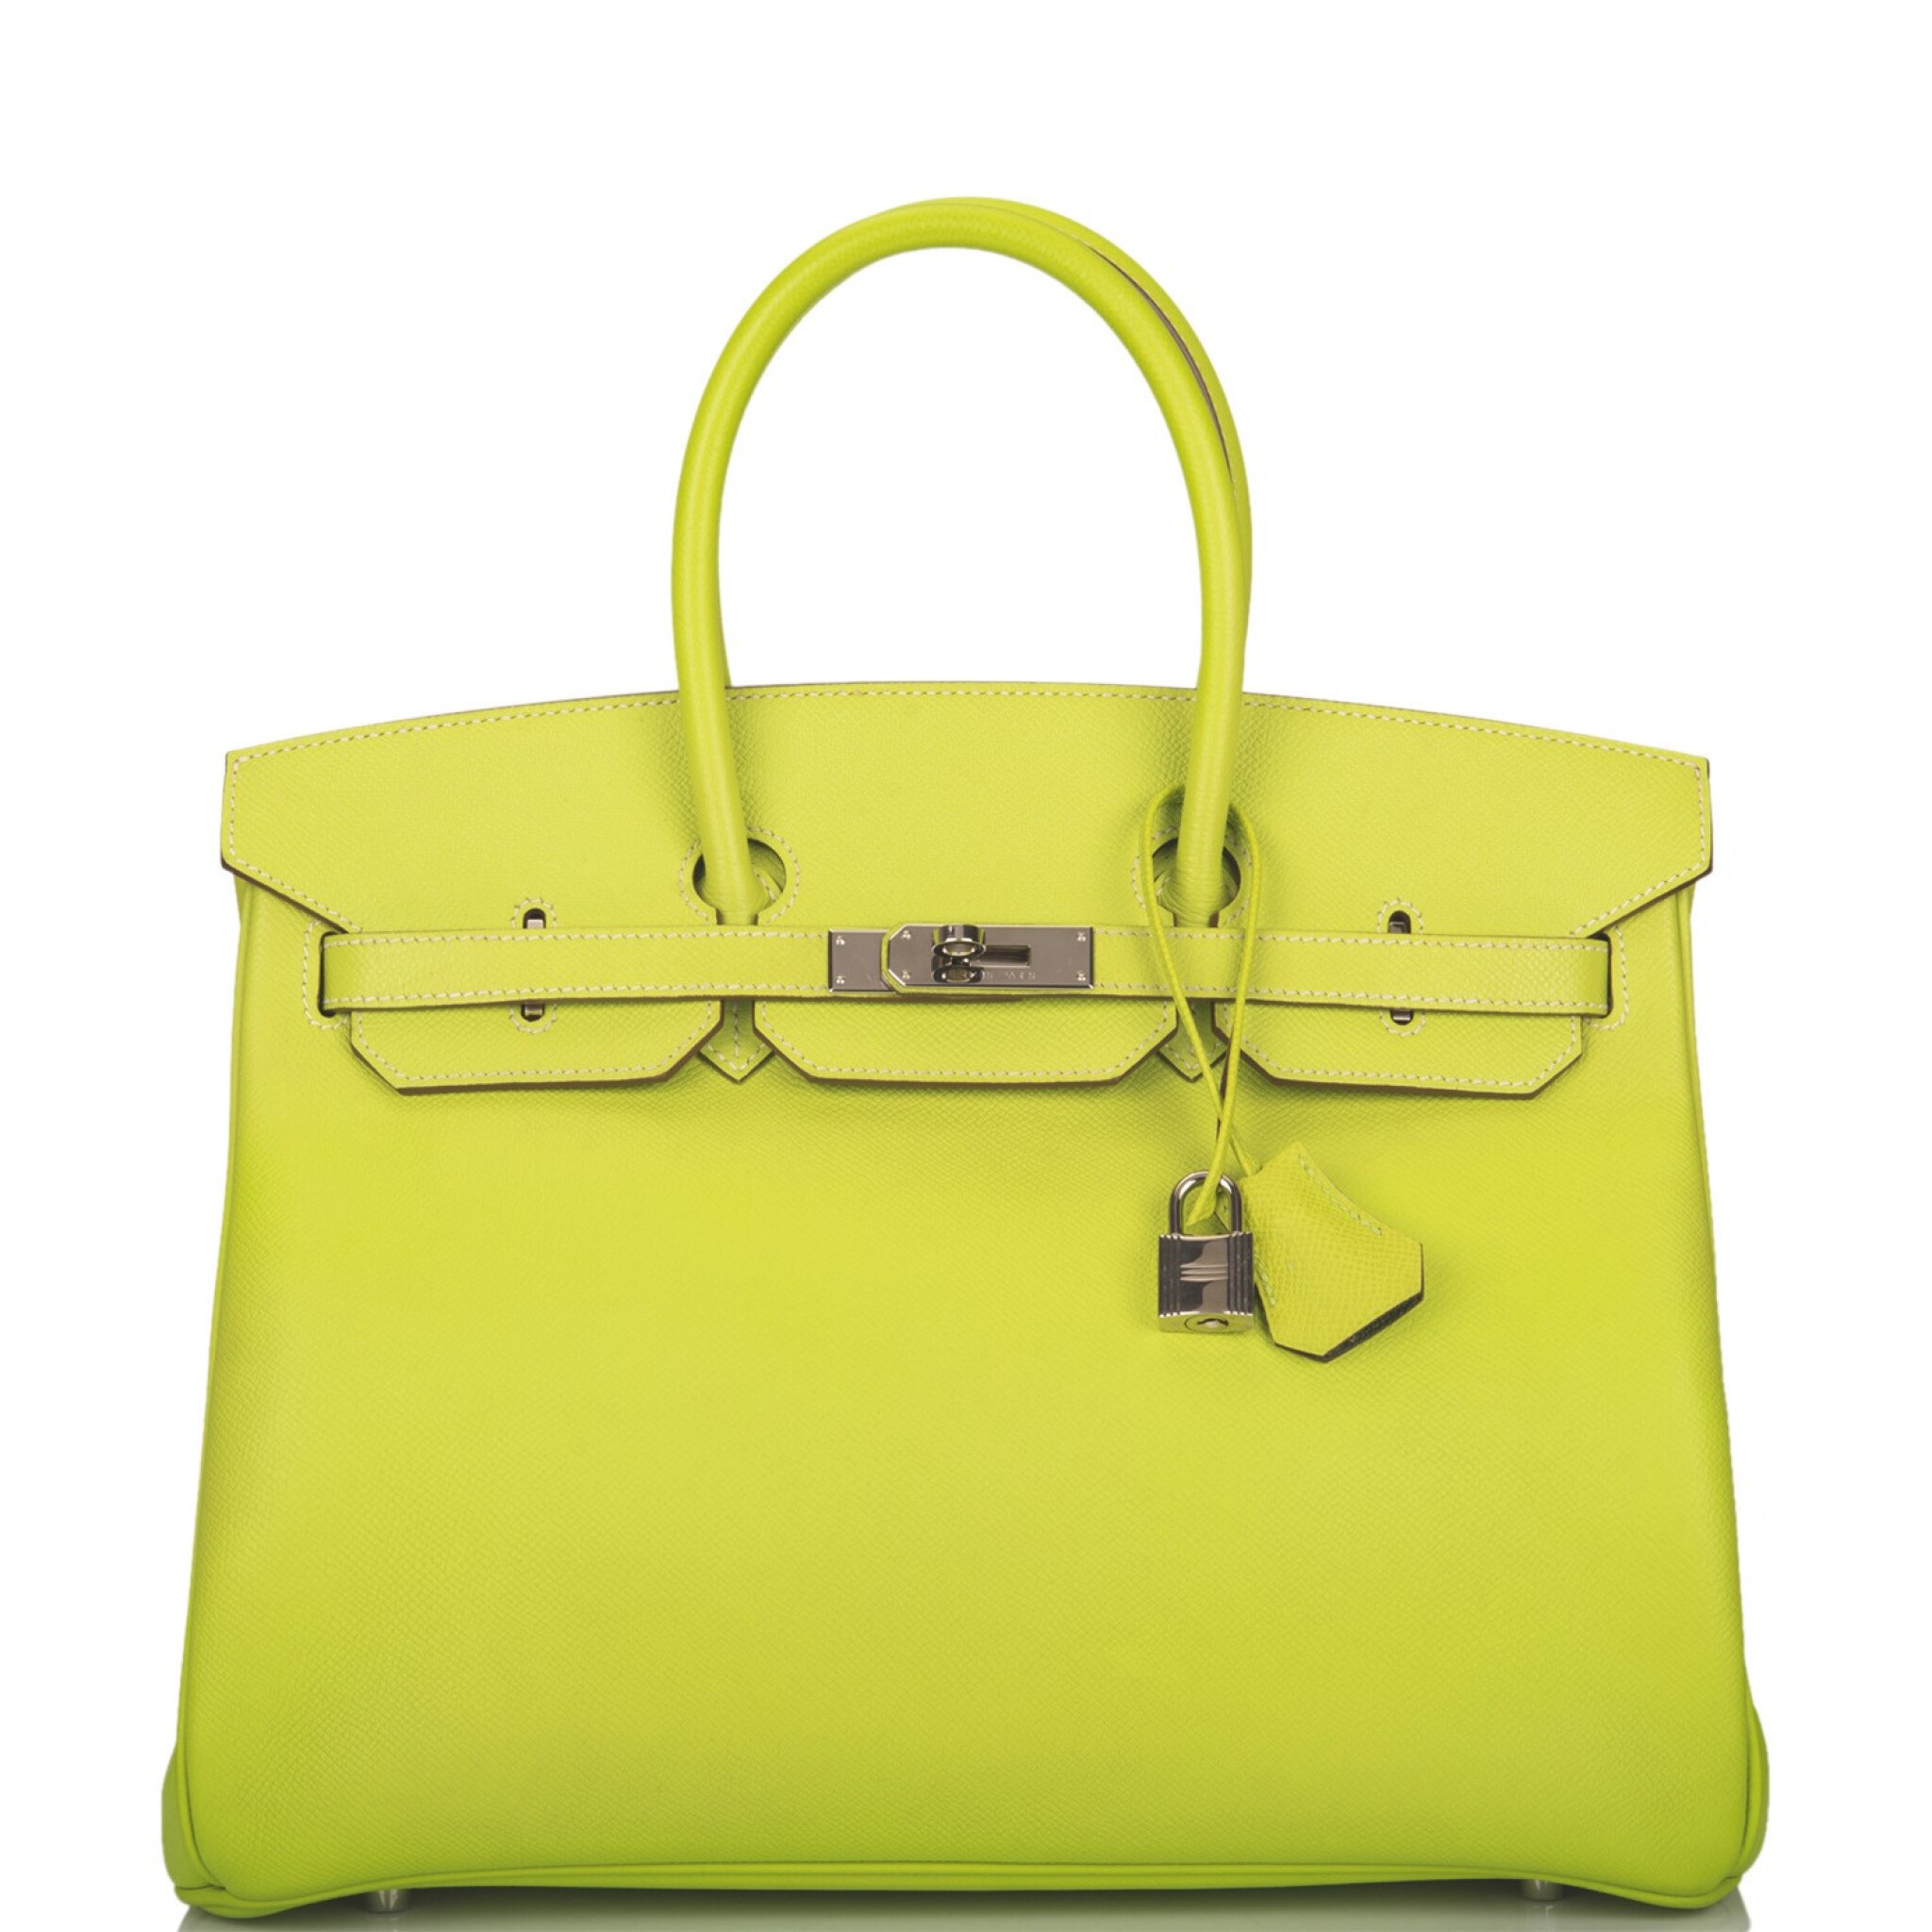 """View full screen - View 1 of Lot 31. Hermès Bi-color Kiwi and Lichen """"Candy"""" Birkin 35cm of Epsom Leather with Palladium Hardware."""